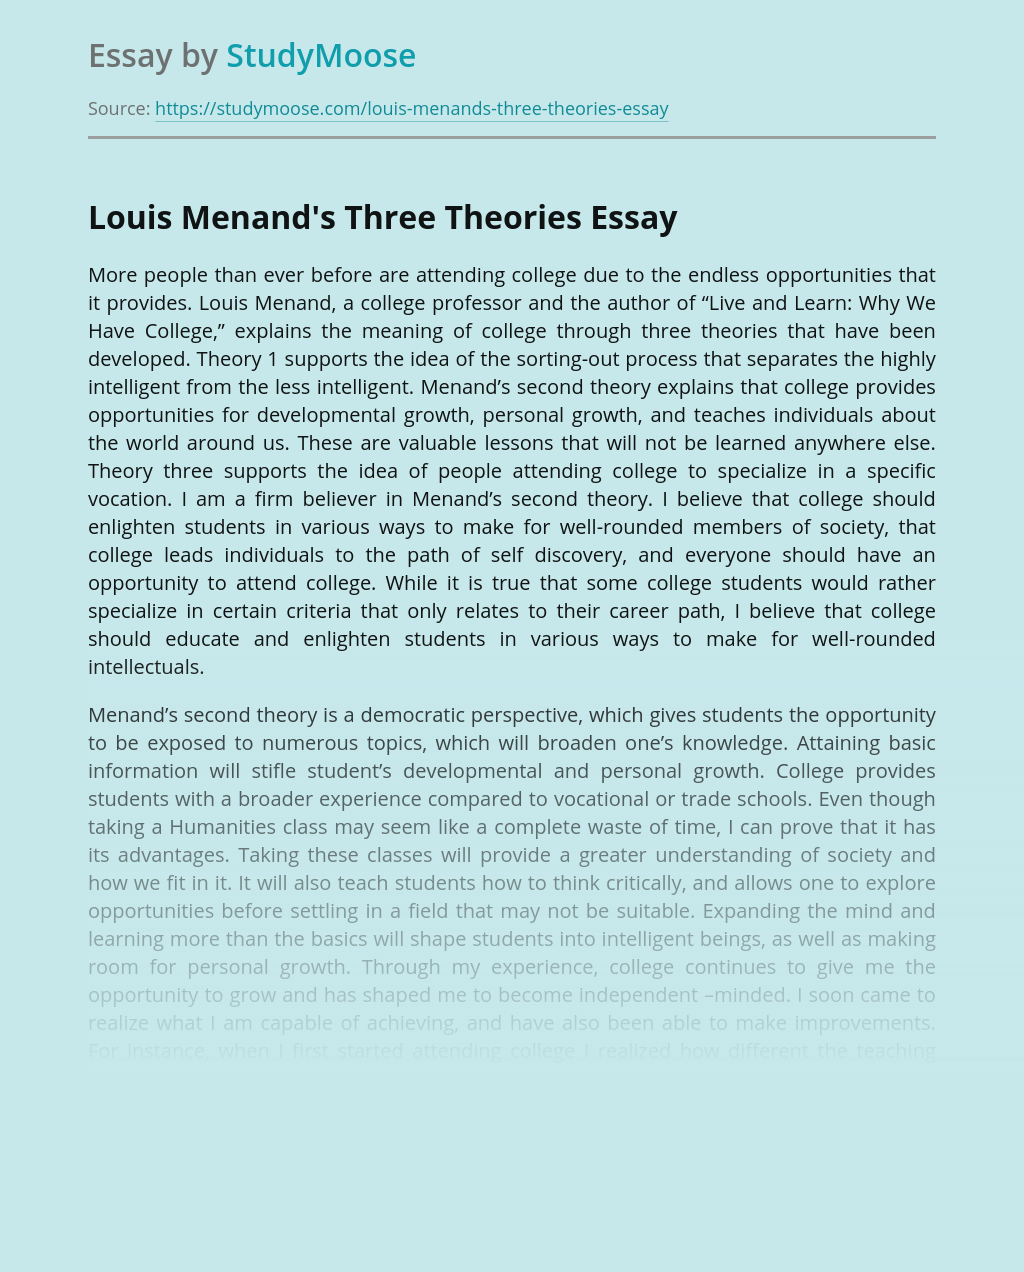 Louis Menand's Three Theories